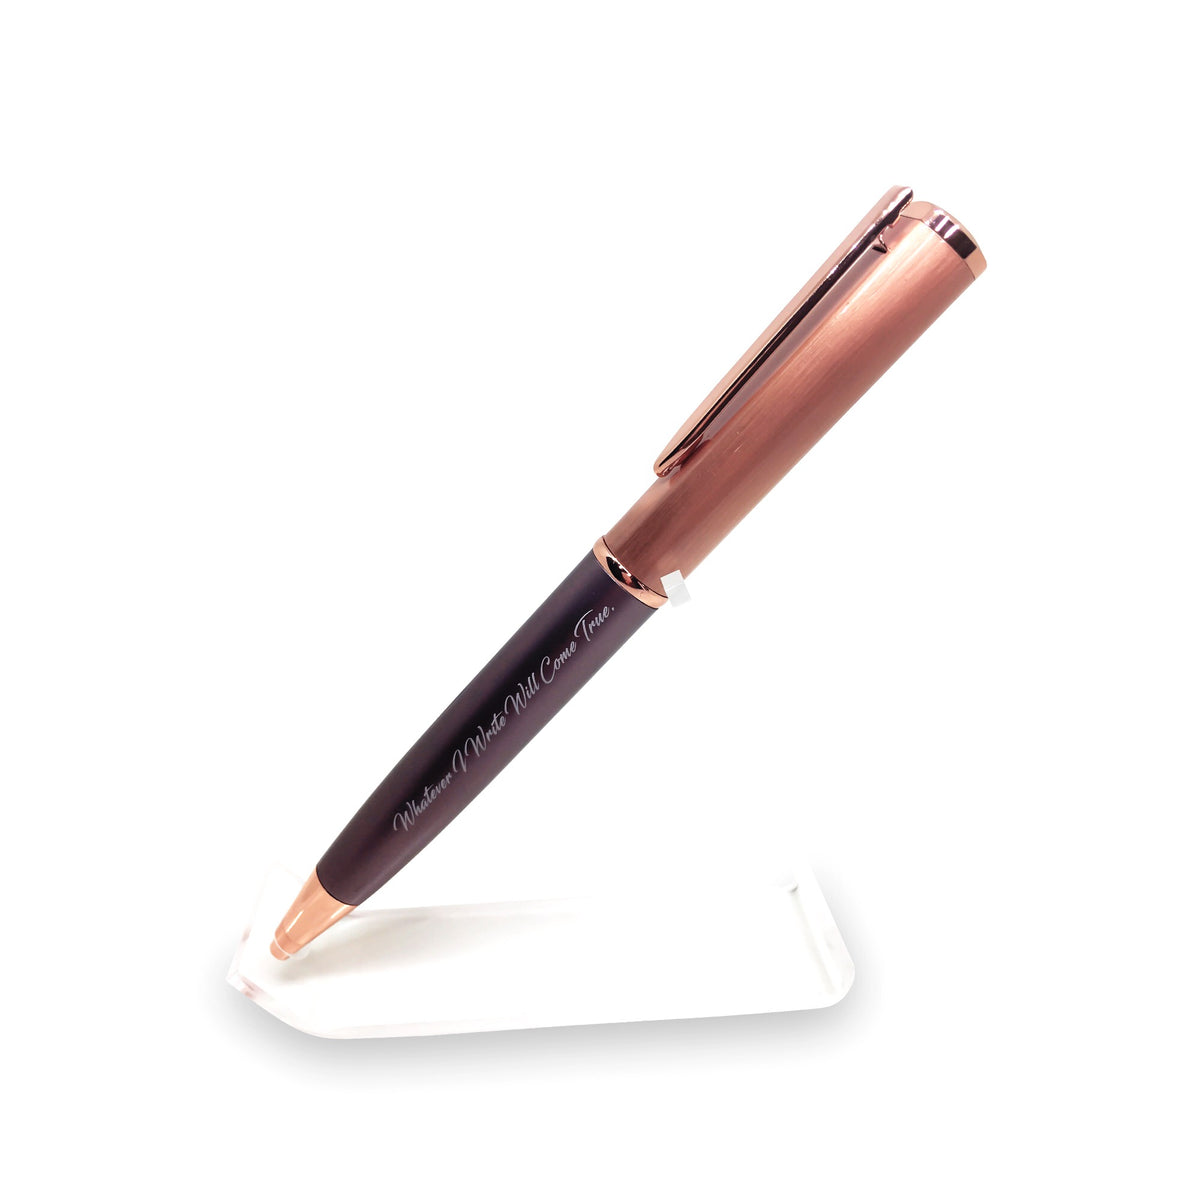 Rose Gold Manifestation Pen -  Motivational Manifestation Pen - Whatever I Write Will Come True